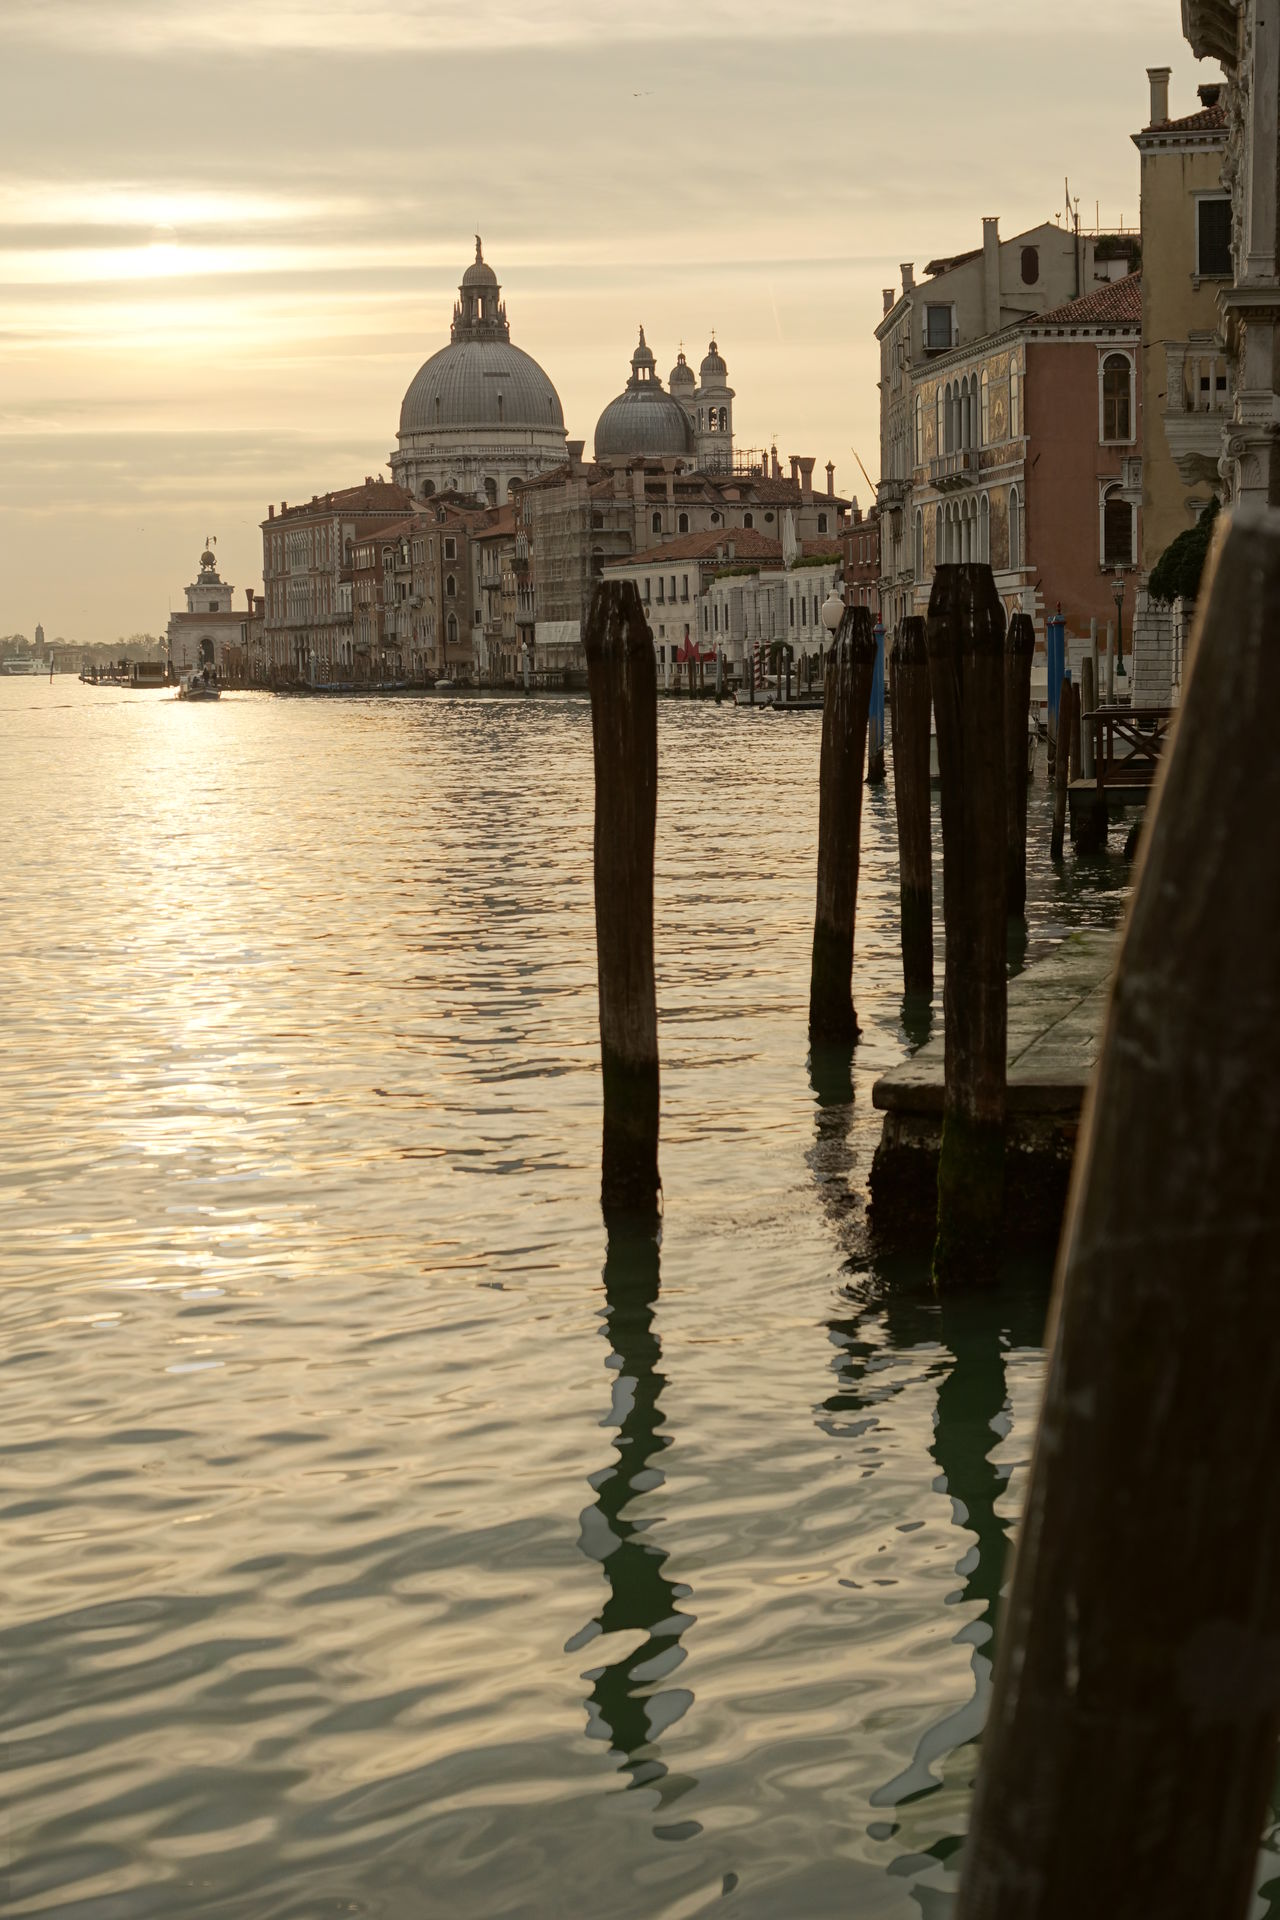 Santa Maria della Salute shortly after Sunrise Architecture Bell Tower Building Exterior Built Structure Canale Grande City Cloud - Sky Dawn Dome Italy Morning Light No People Outdoors Place Of Worship Religion Santa Maria Della Salute Sea Sky Spirituality Sunset Travel Desinations Travel Destinations Venice Water Waterfront